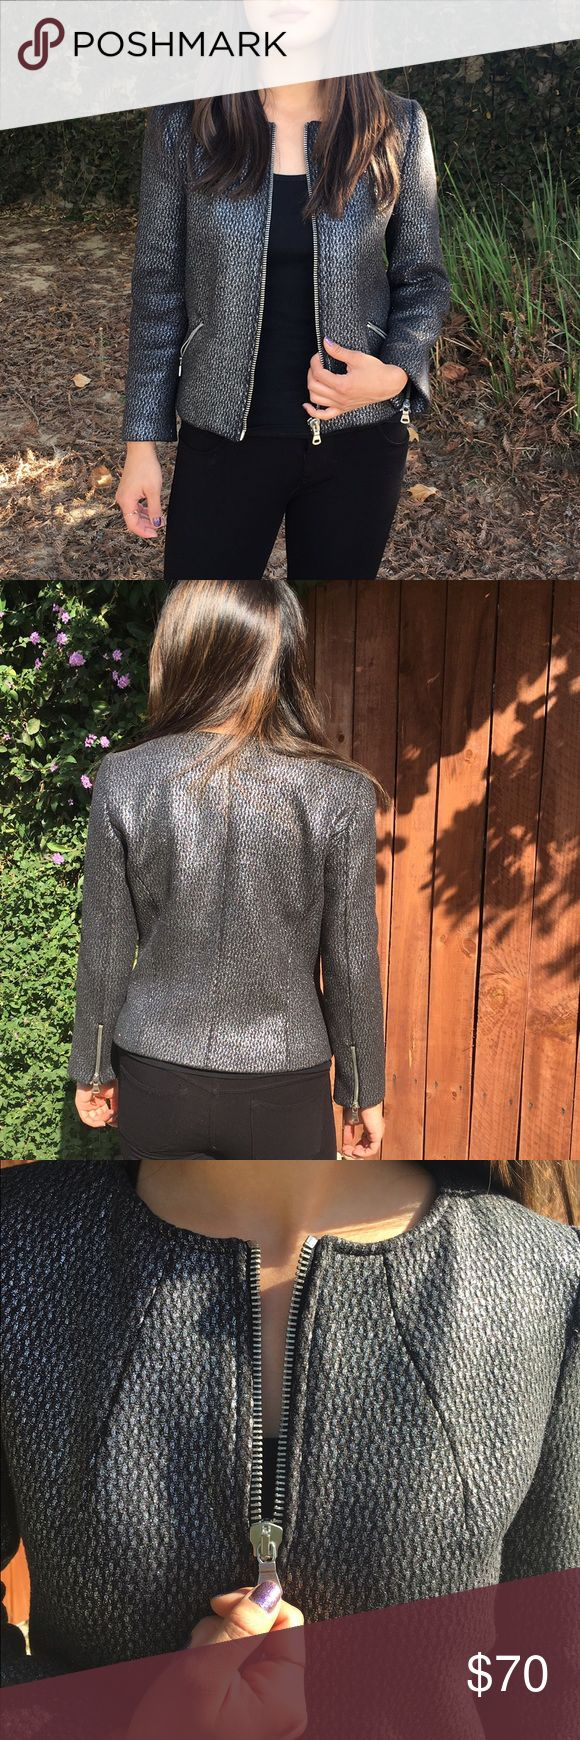 Sale! Gray/Silver Zara Jacket Absolutely beautiful jacket. I've probably only worn this about 1x. Extremely high quality. Has zippers on the sleeves as pictured. Metallic looking as pictured. Zara Jackets & Coats